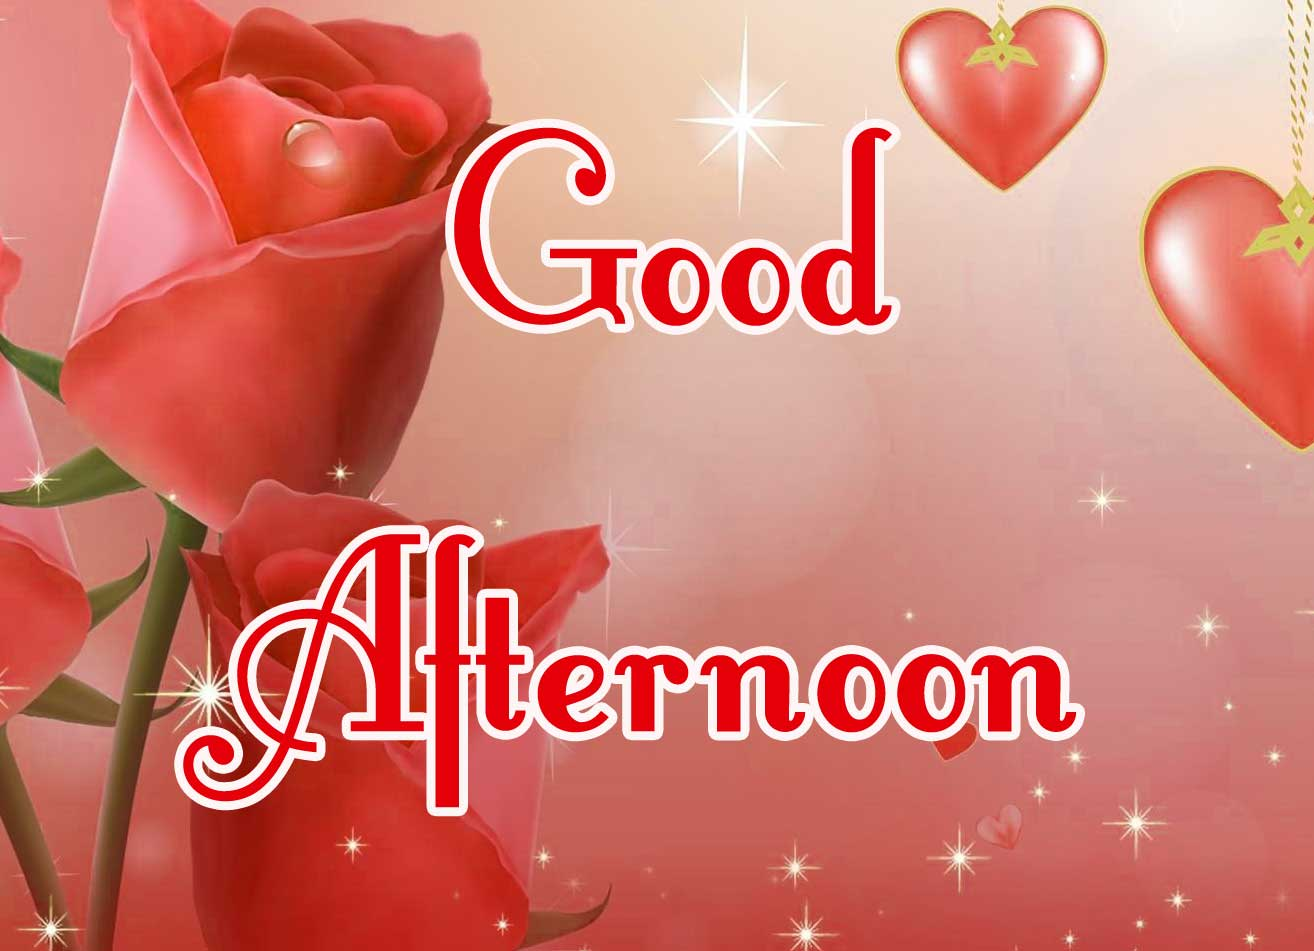 Good Afternoon 6